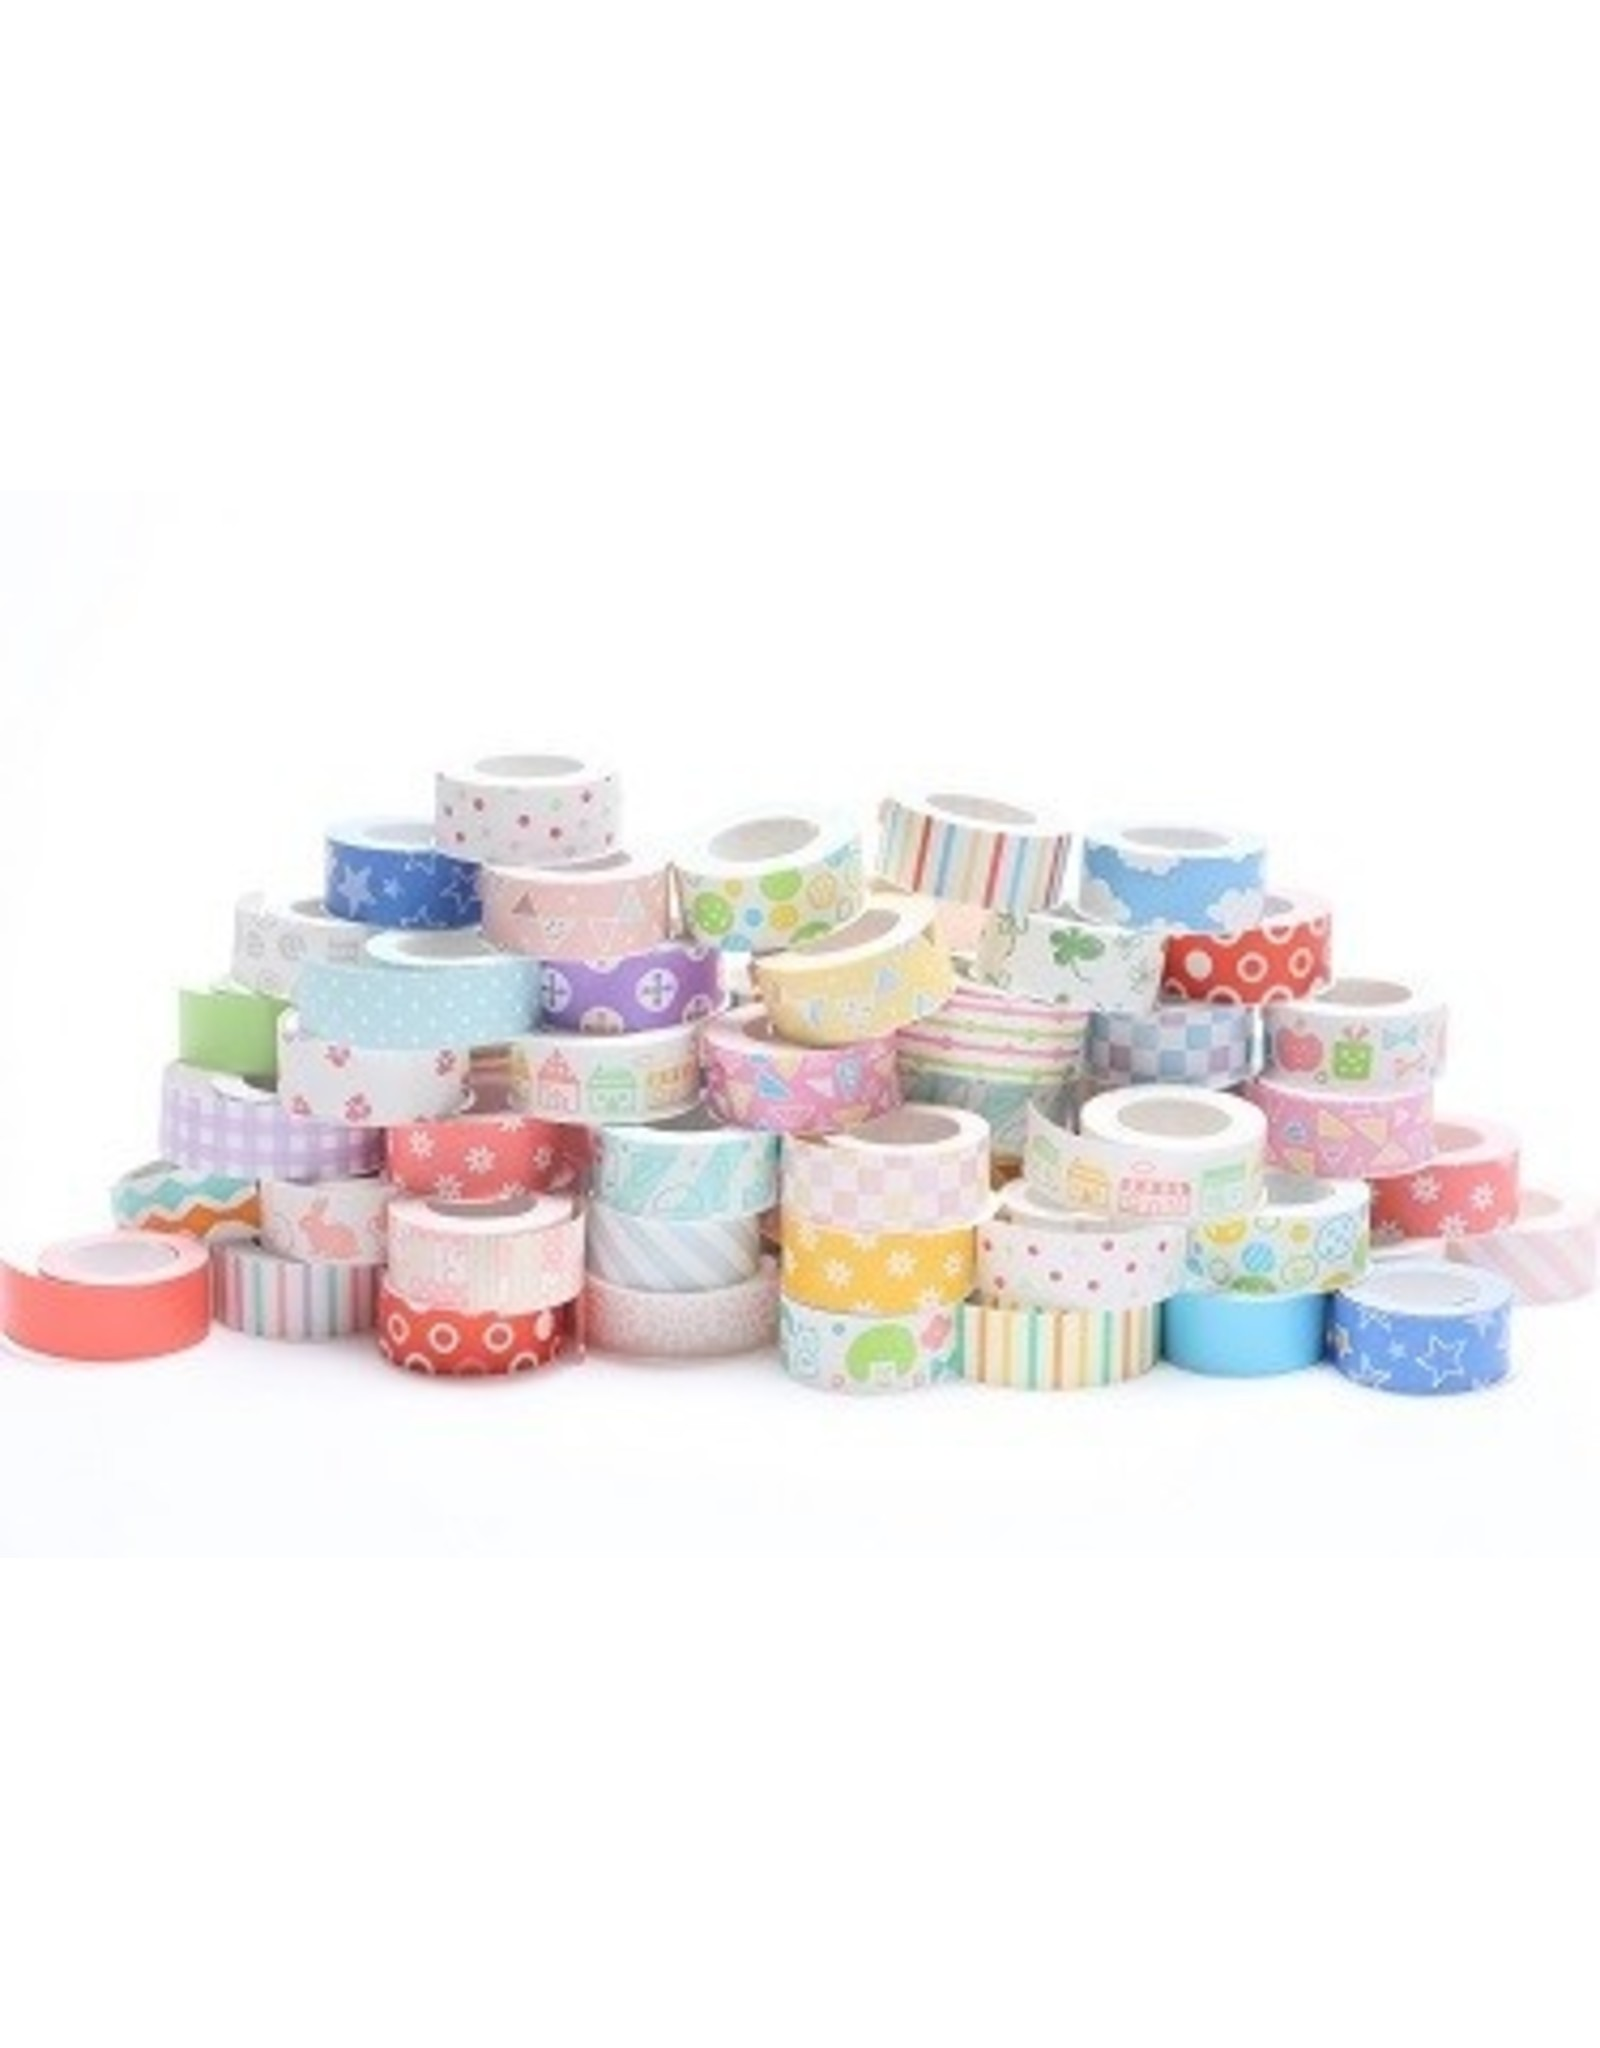 KING JIM CO., LTD. COHARU THERMAL PAPER MASKING TAPE for TEPRA LITE CANDY PINK